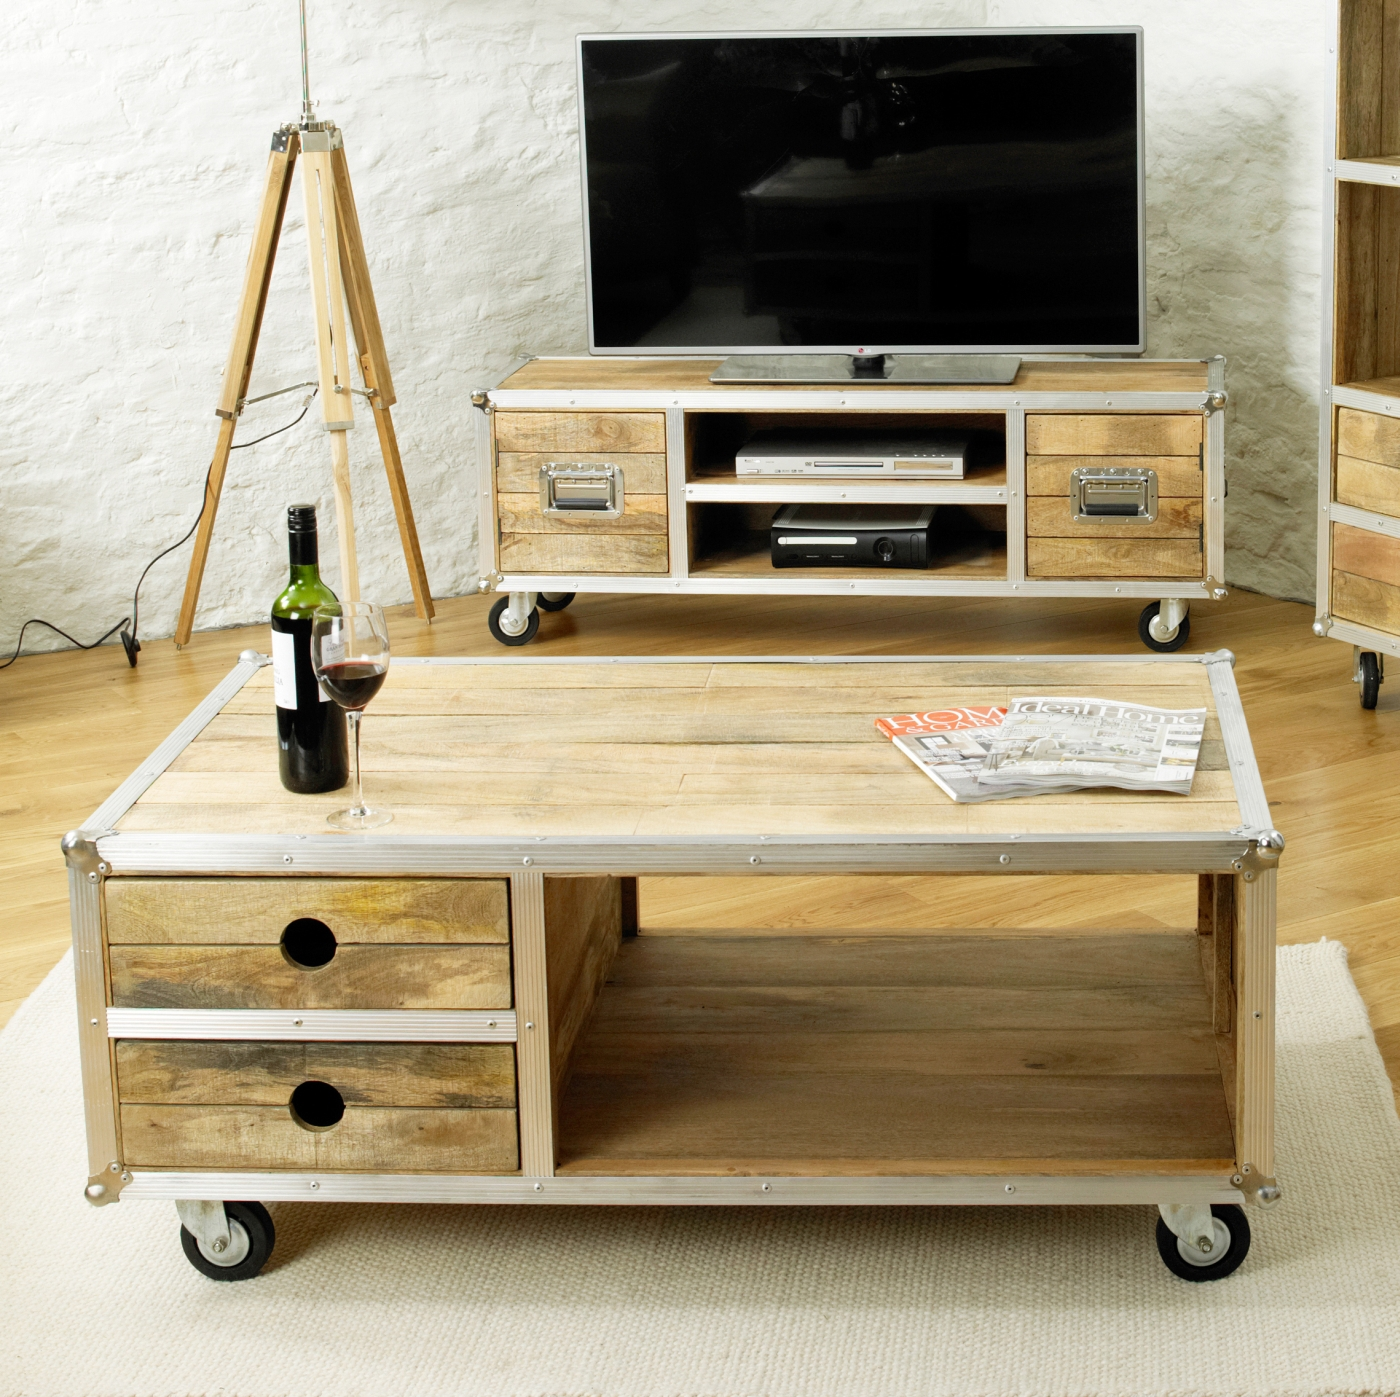 Cameron Coffee Table: Cameron Urban Chic Wood Furniture Living Room Storage